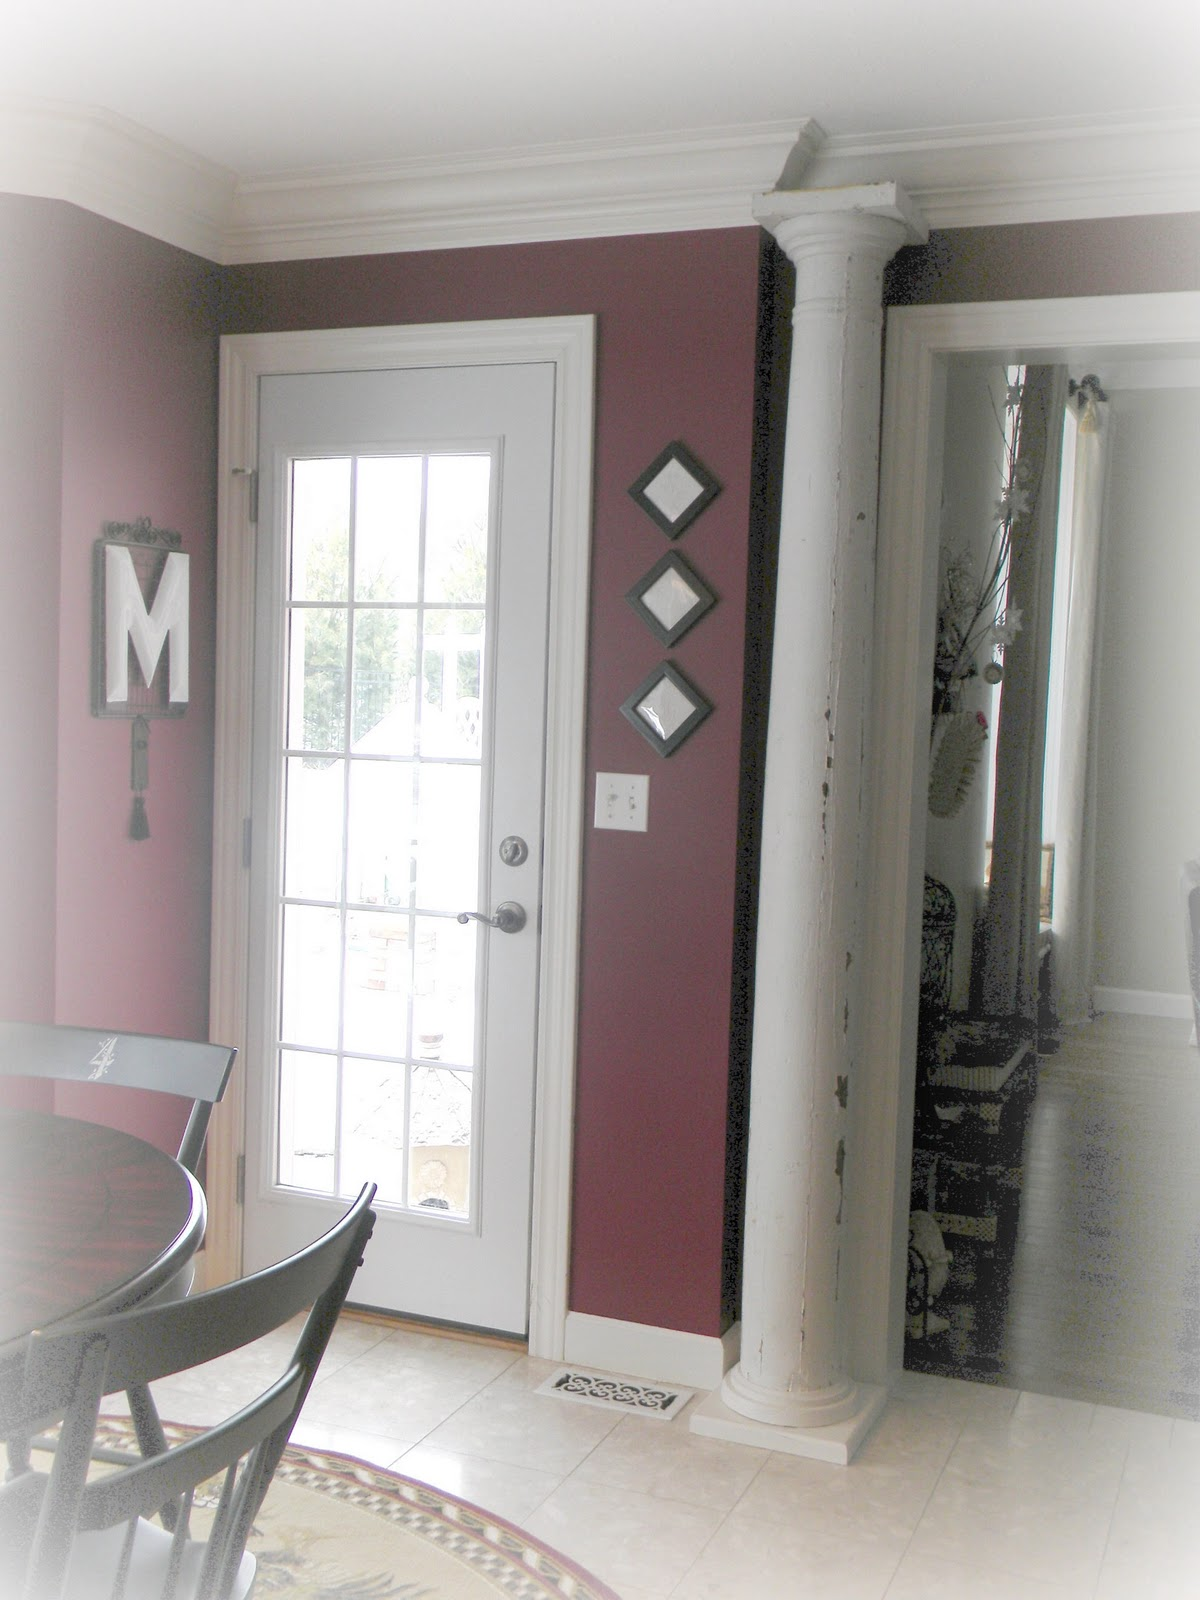 So Here Is My Promised Dining Room Tour You Can See Kitchen Our Home Was Built With A Formal That We Converted To Study